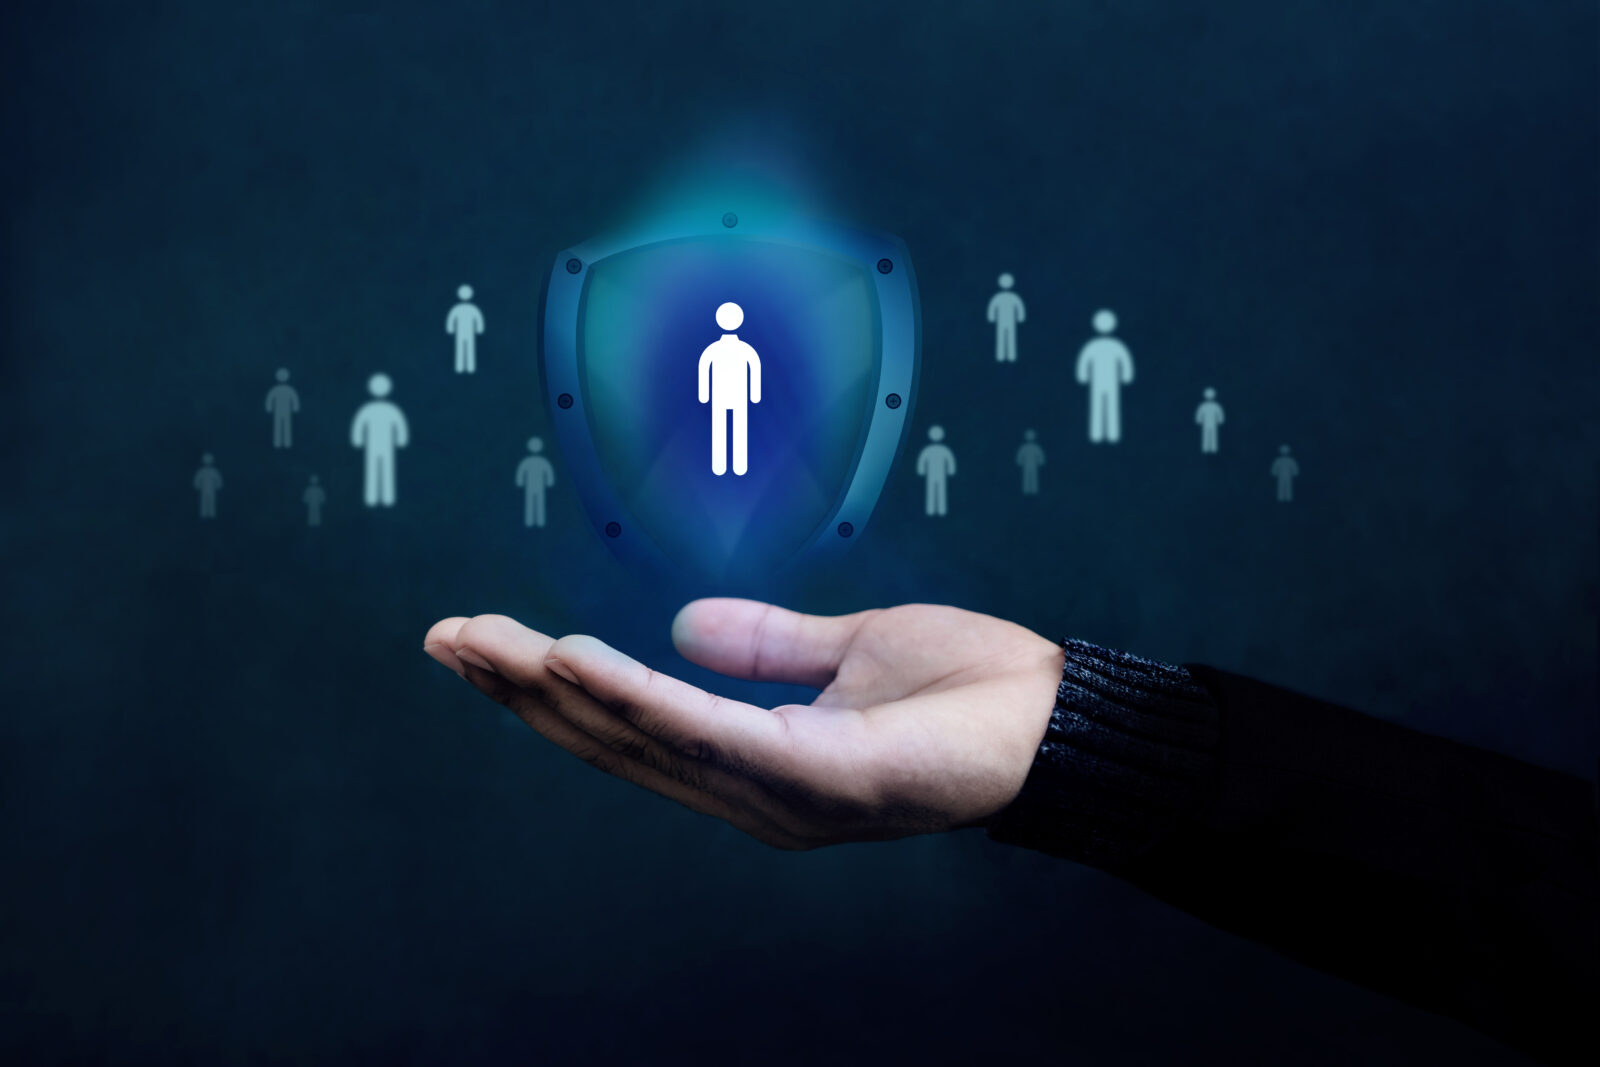 Life Insurance Concept. Company Supporting and Protecting their Customer by Shield, Human Icon floating over a Careful Gesture Hand of a Businessman